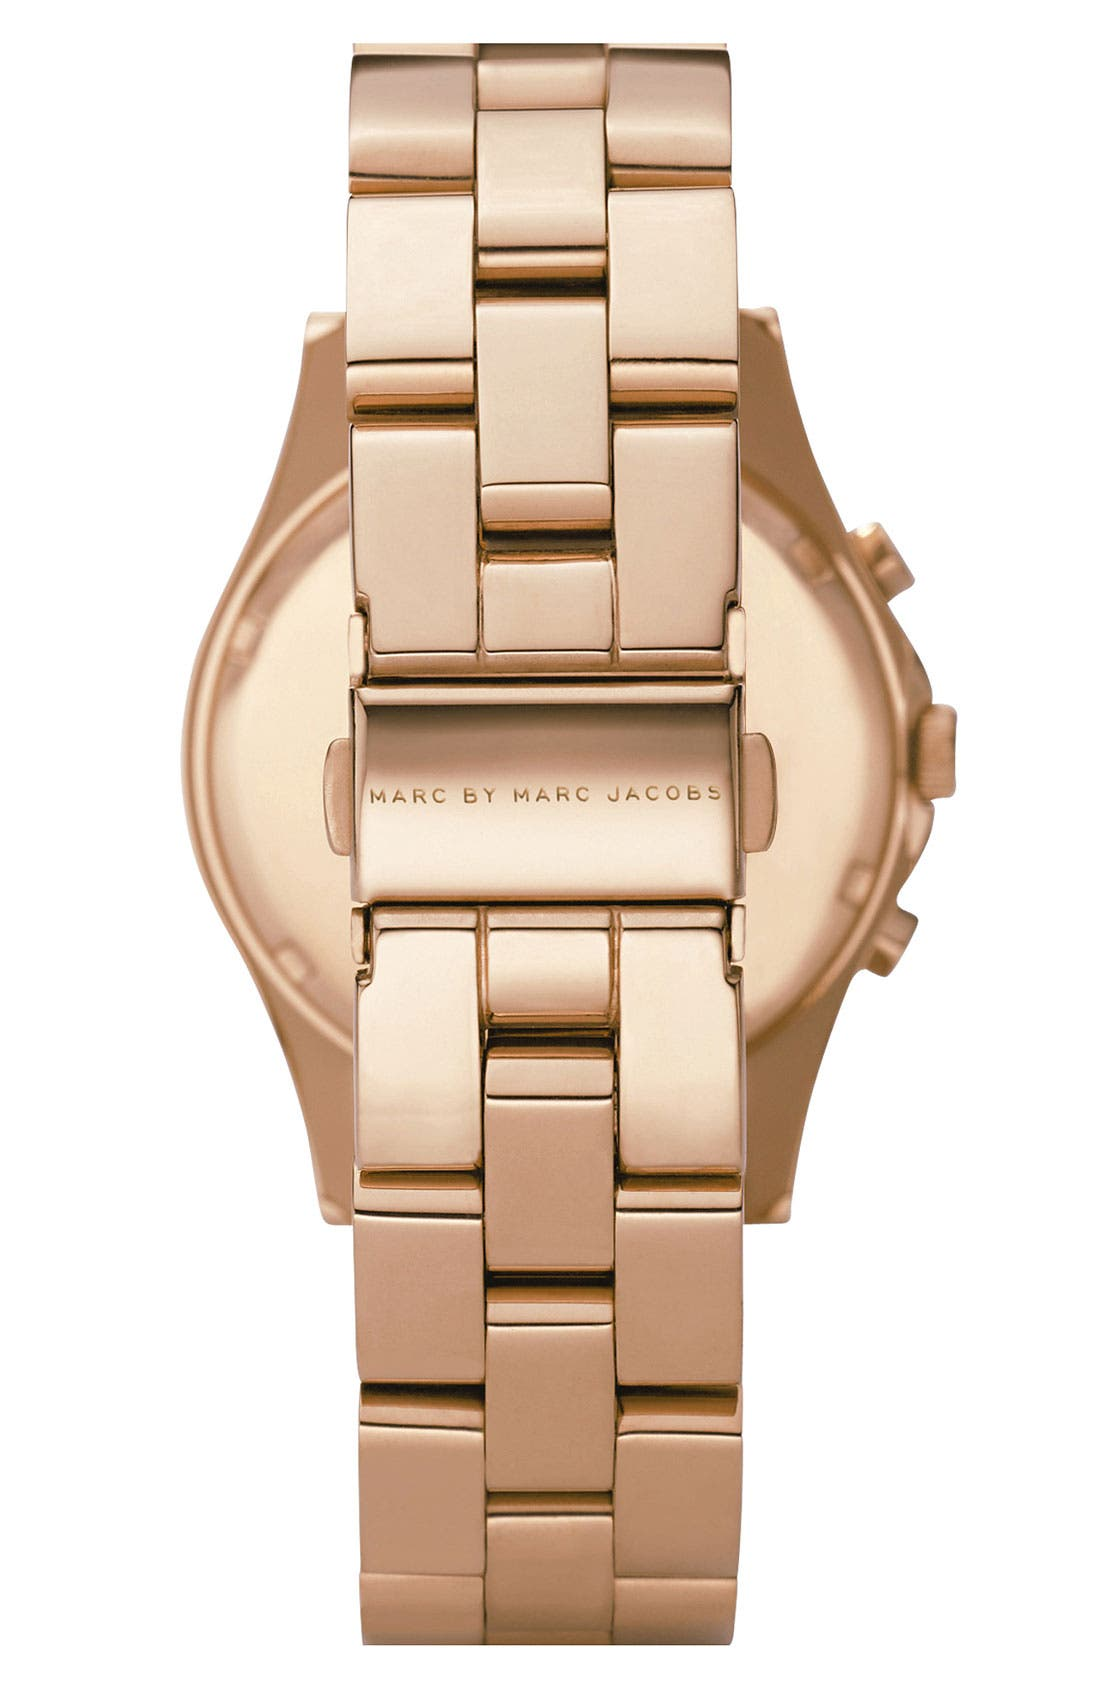 MARC JACOBS,                             'Henry' Chronograph Bracelet Watch, 37mm,                             Alternate thumbnail 2, color,                             710